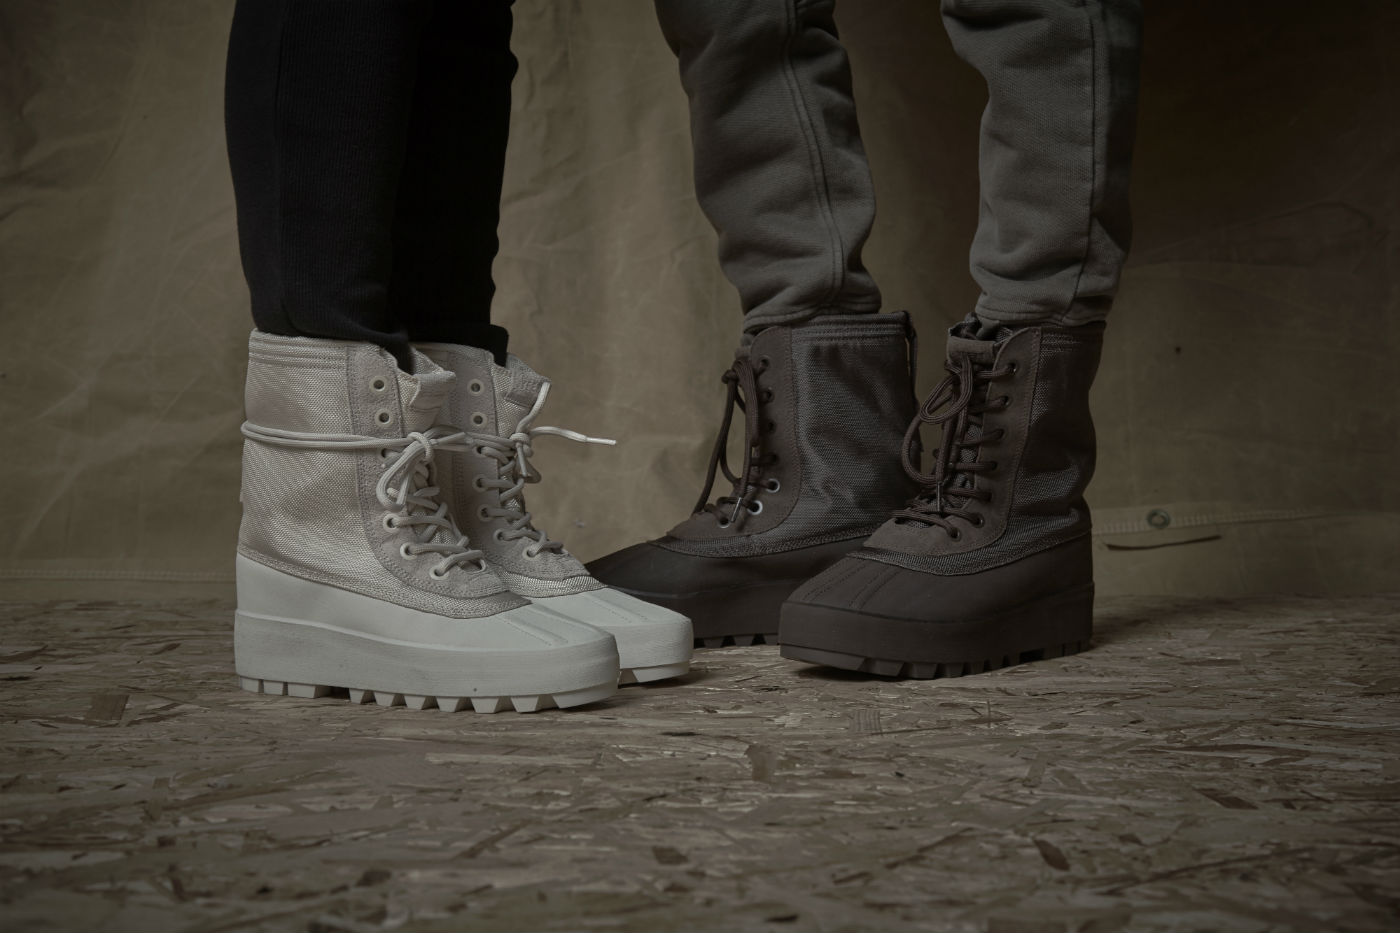 Adidas Yeezy 950 On Feet